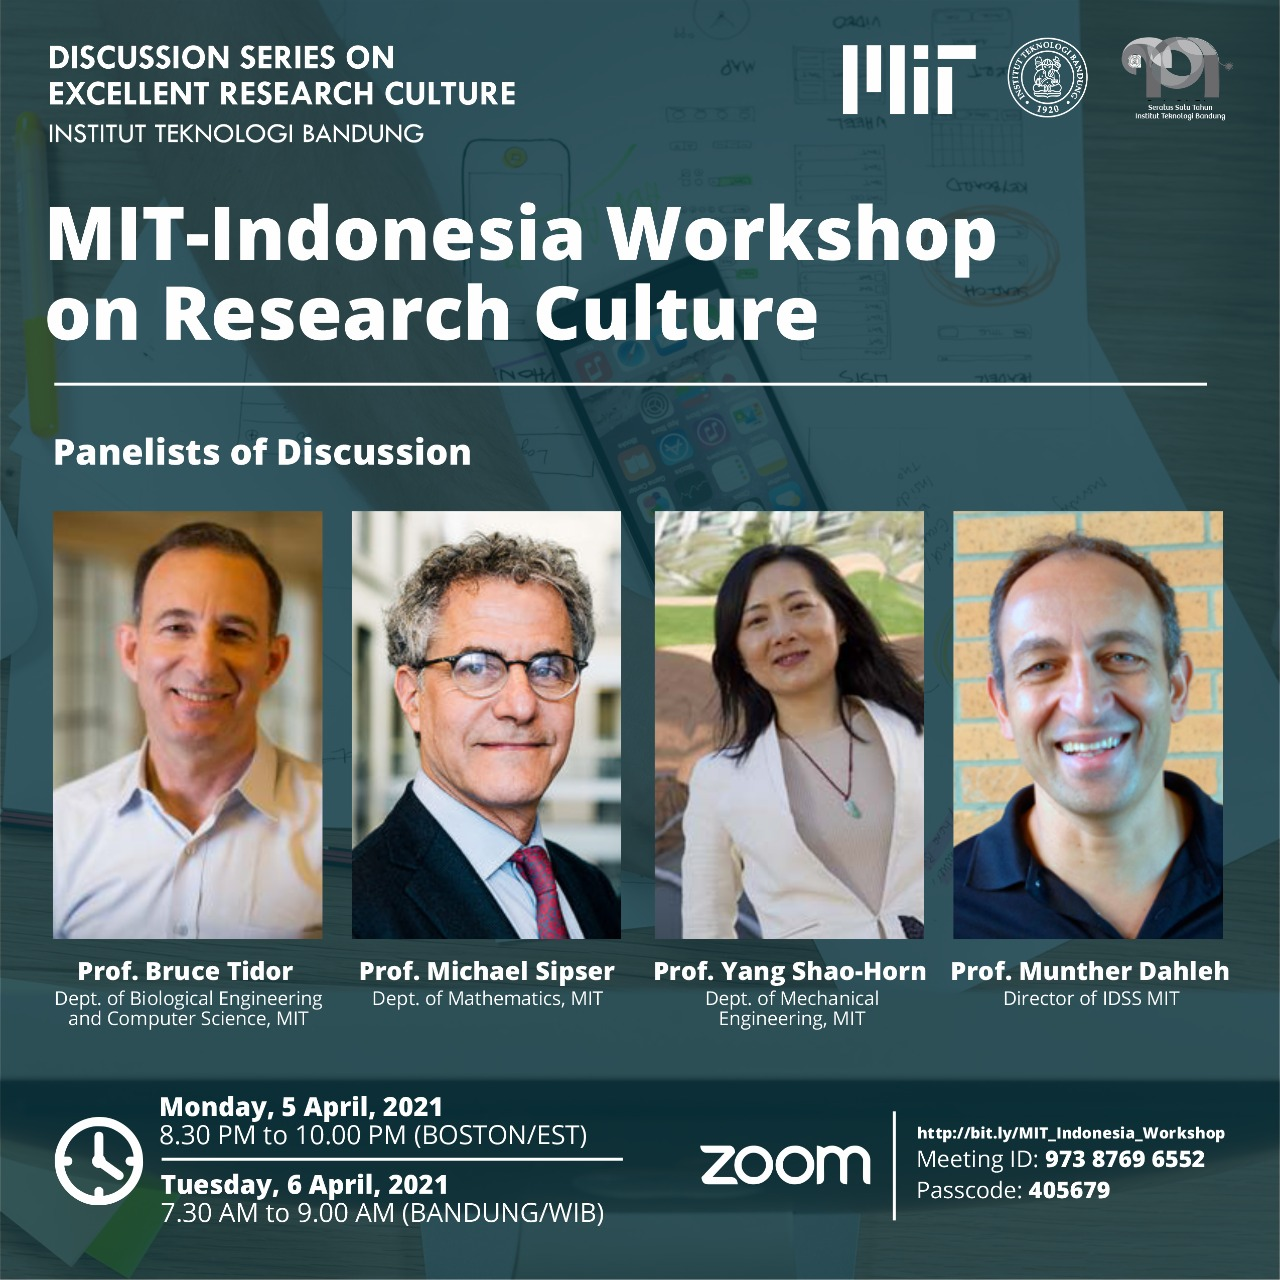 Discussion Series on Excellent Research Culture: MIT – Indonesia Workshop on Research Culture